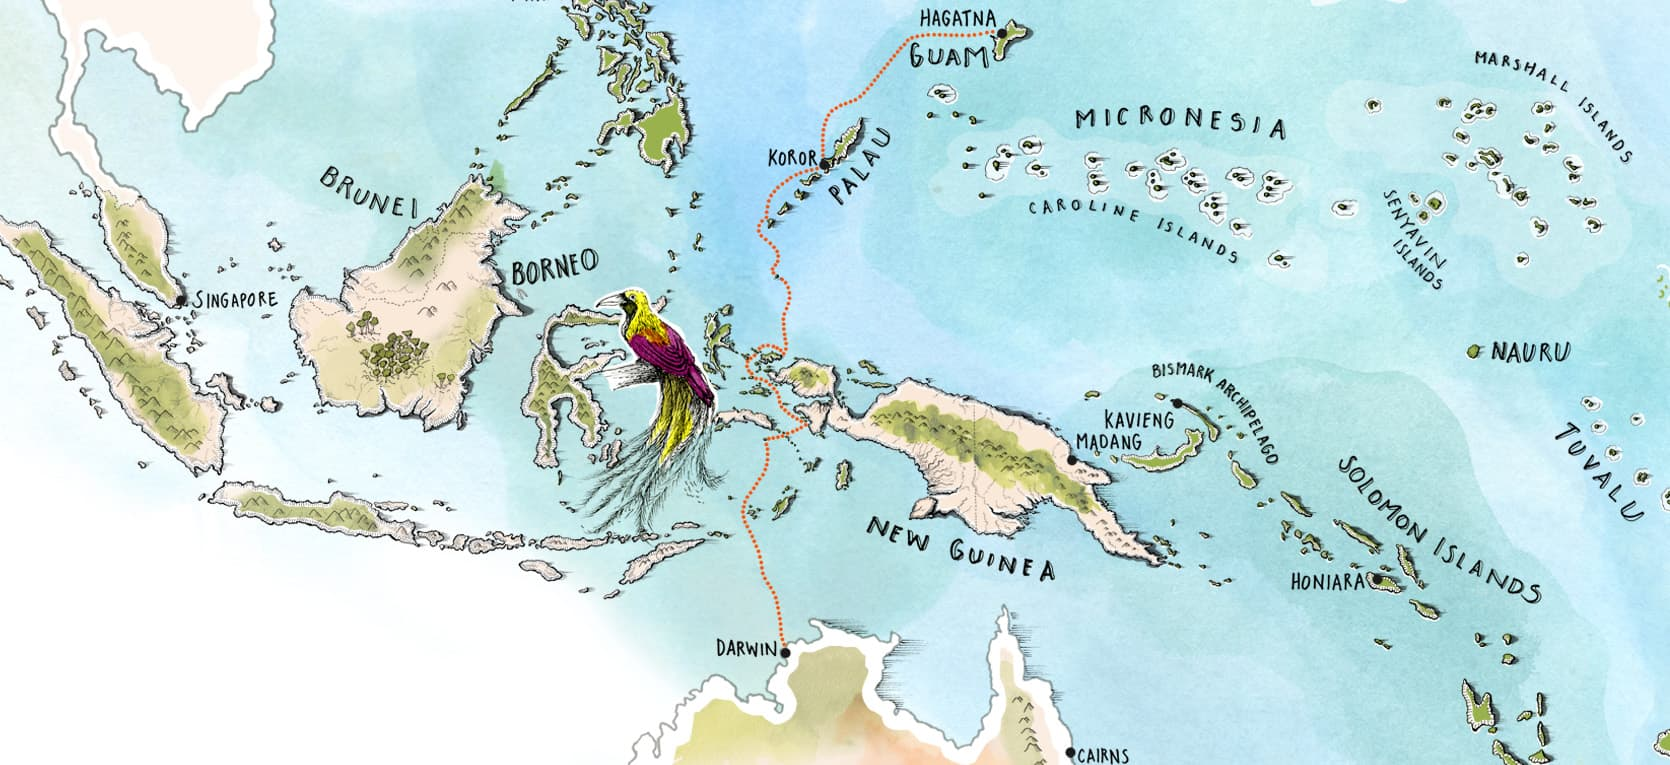 Small Islands of The World - Darwin to Guam Map